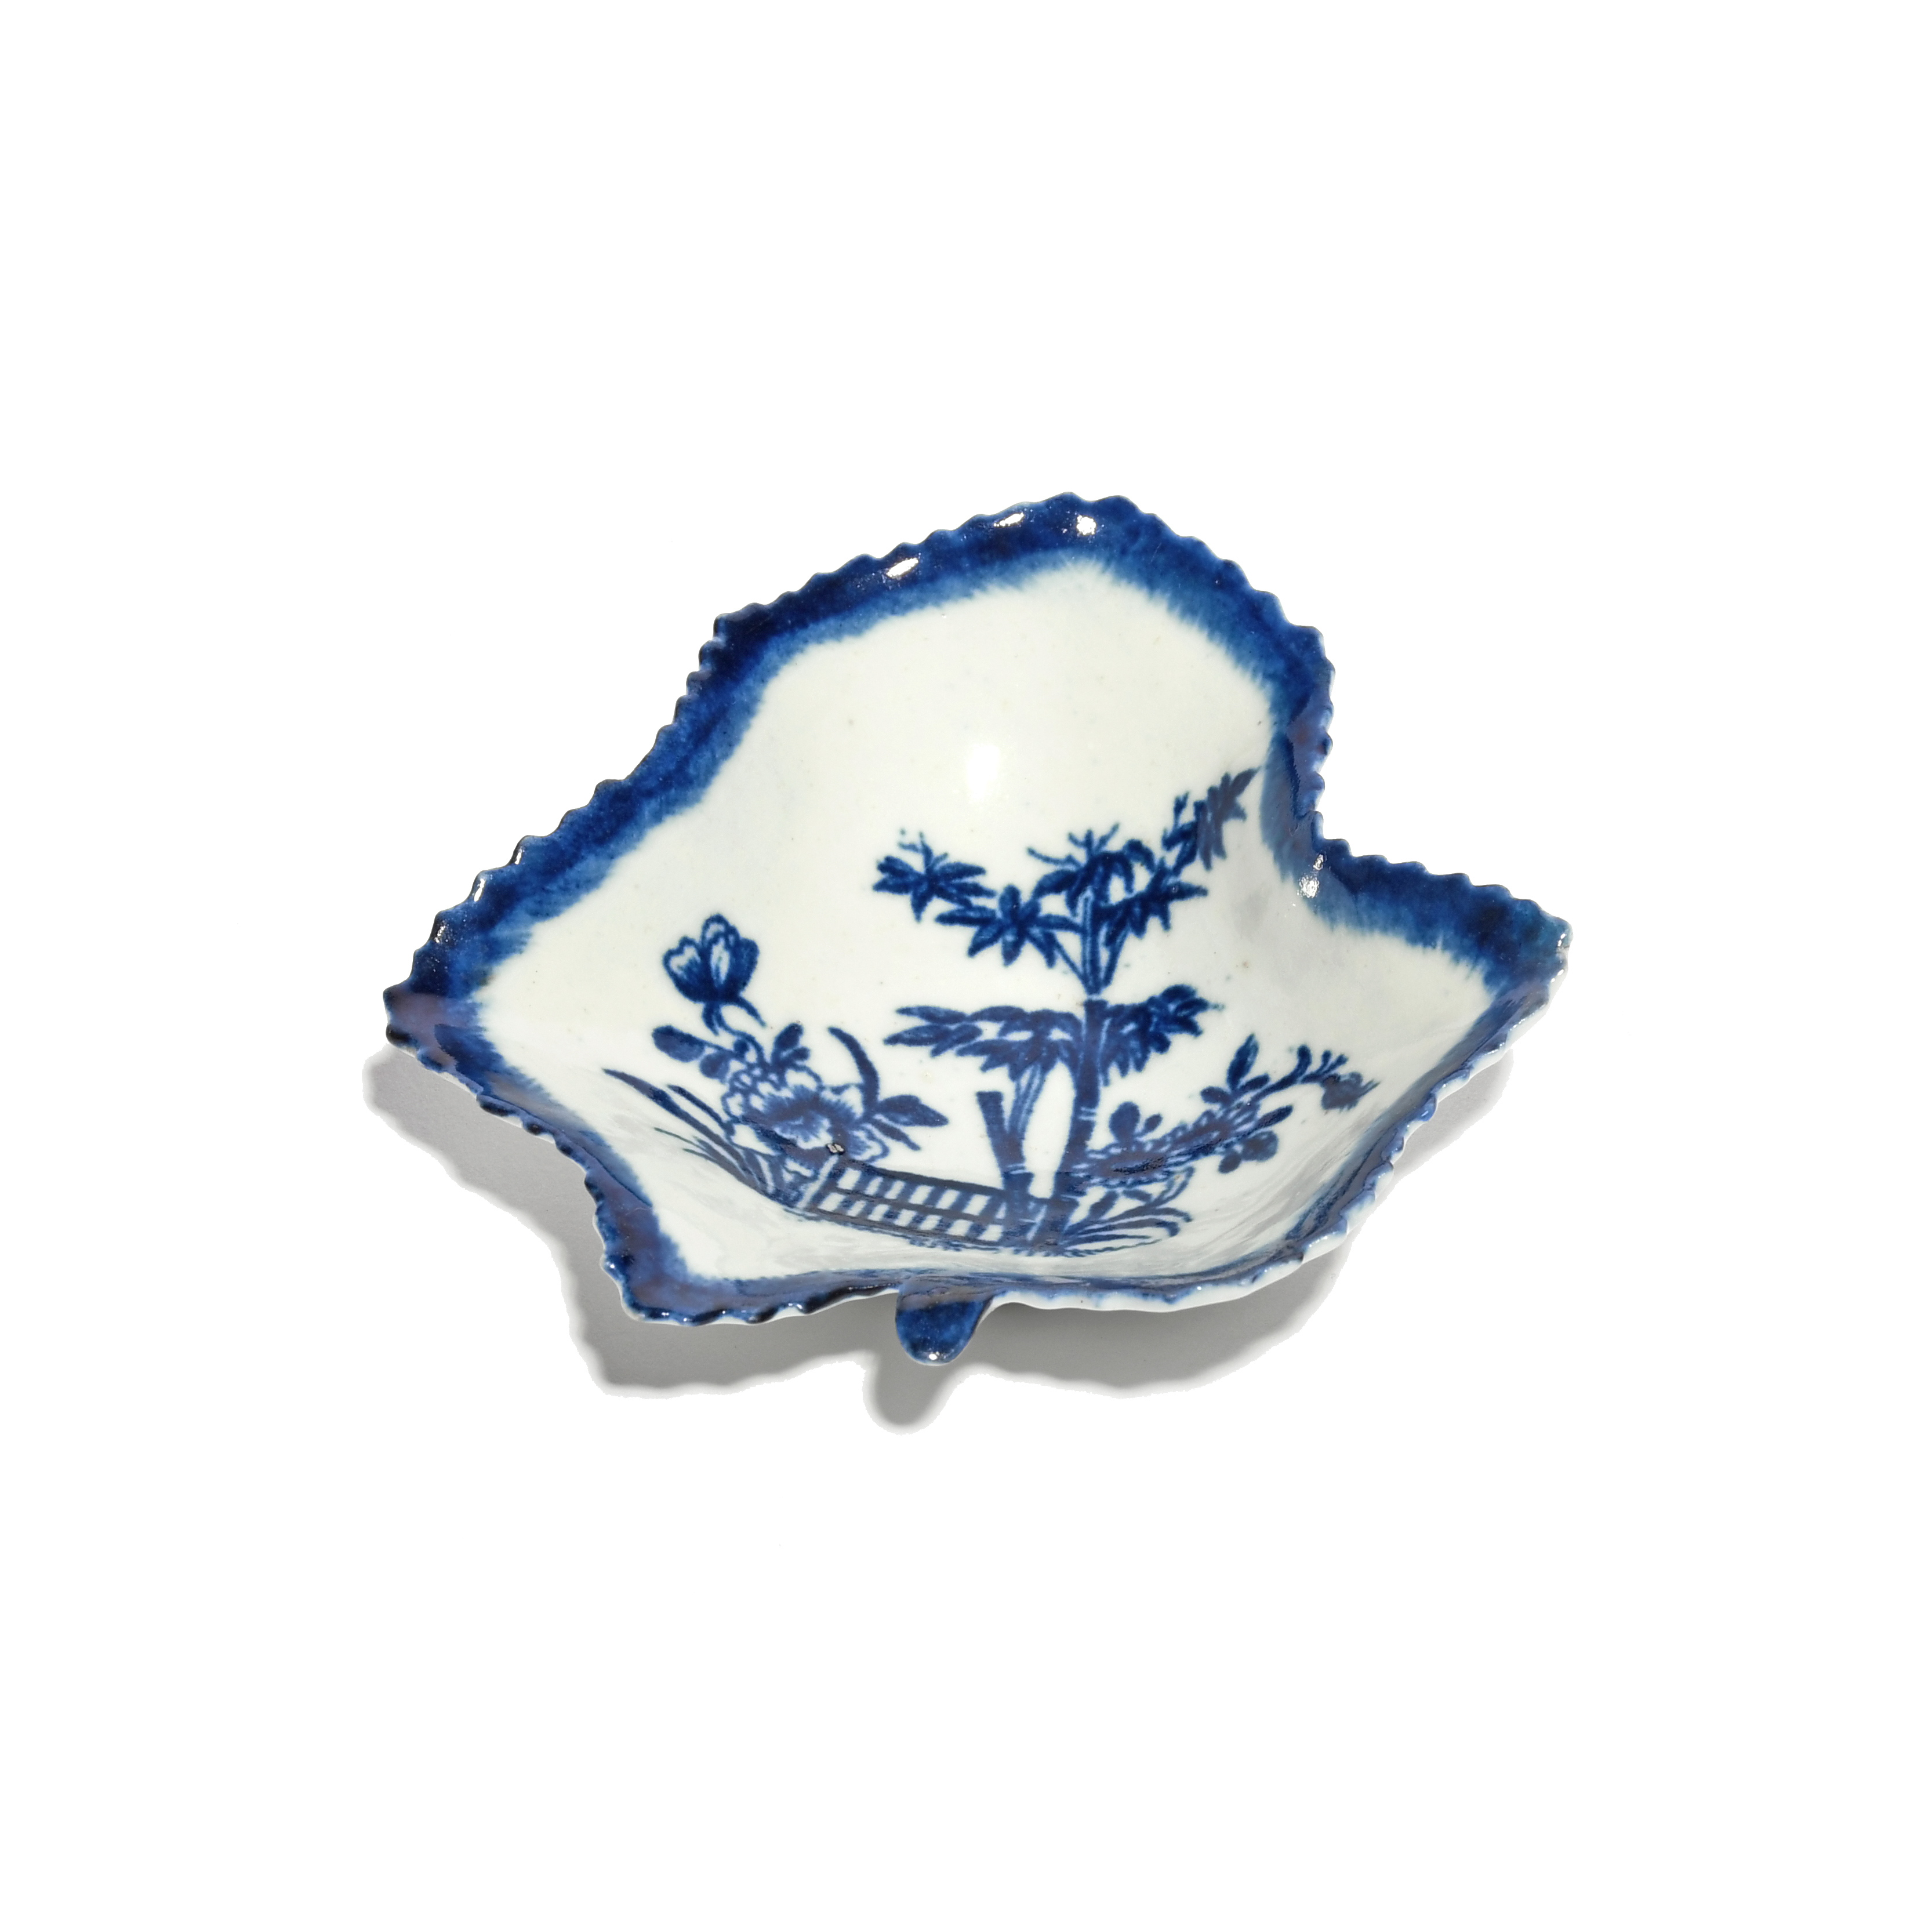 A rare Worcester blue and white pickle leaf dish c.1757-60